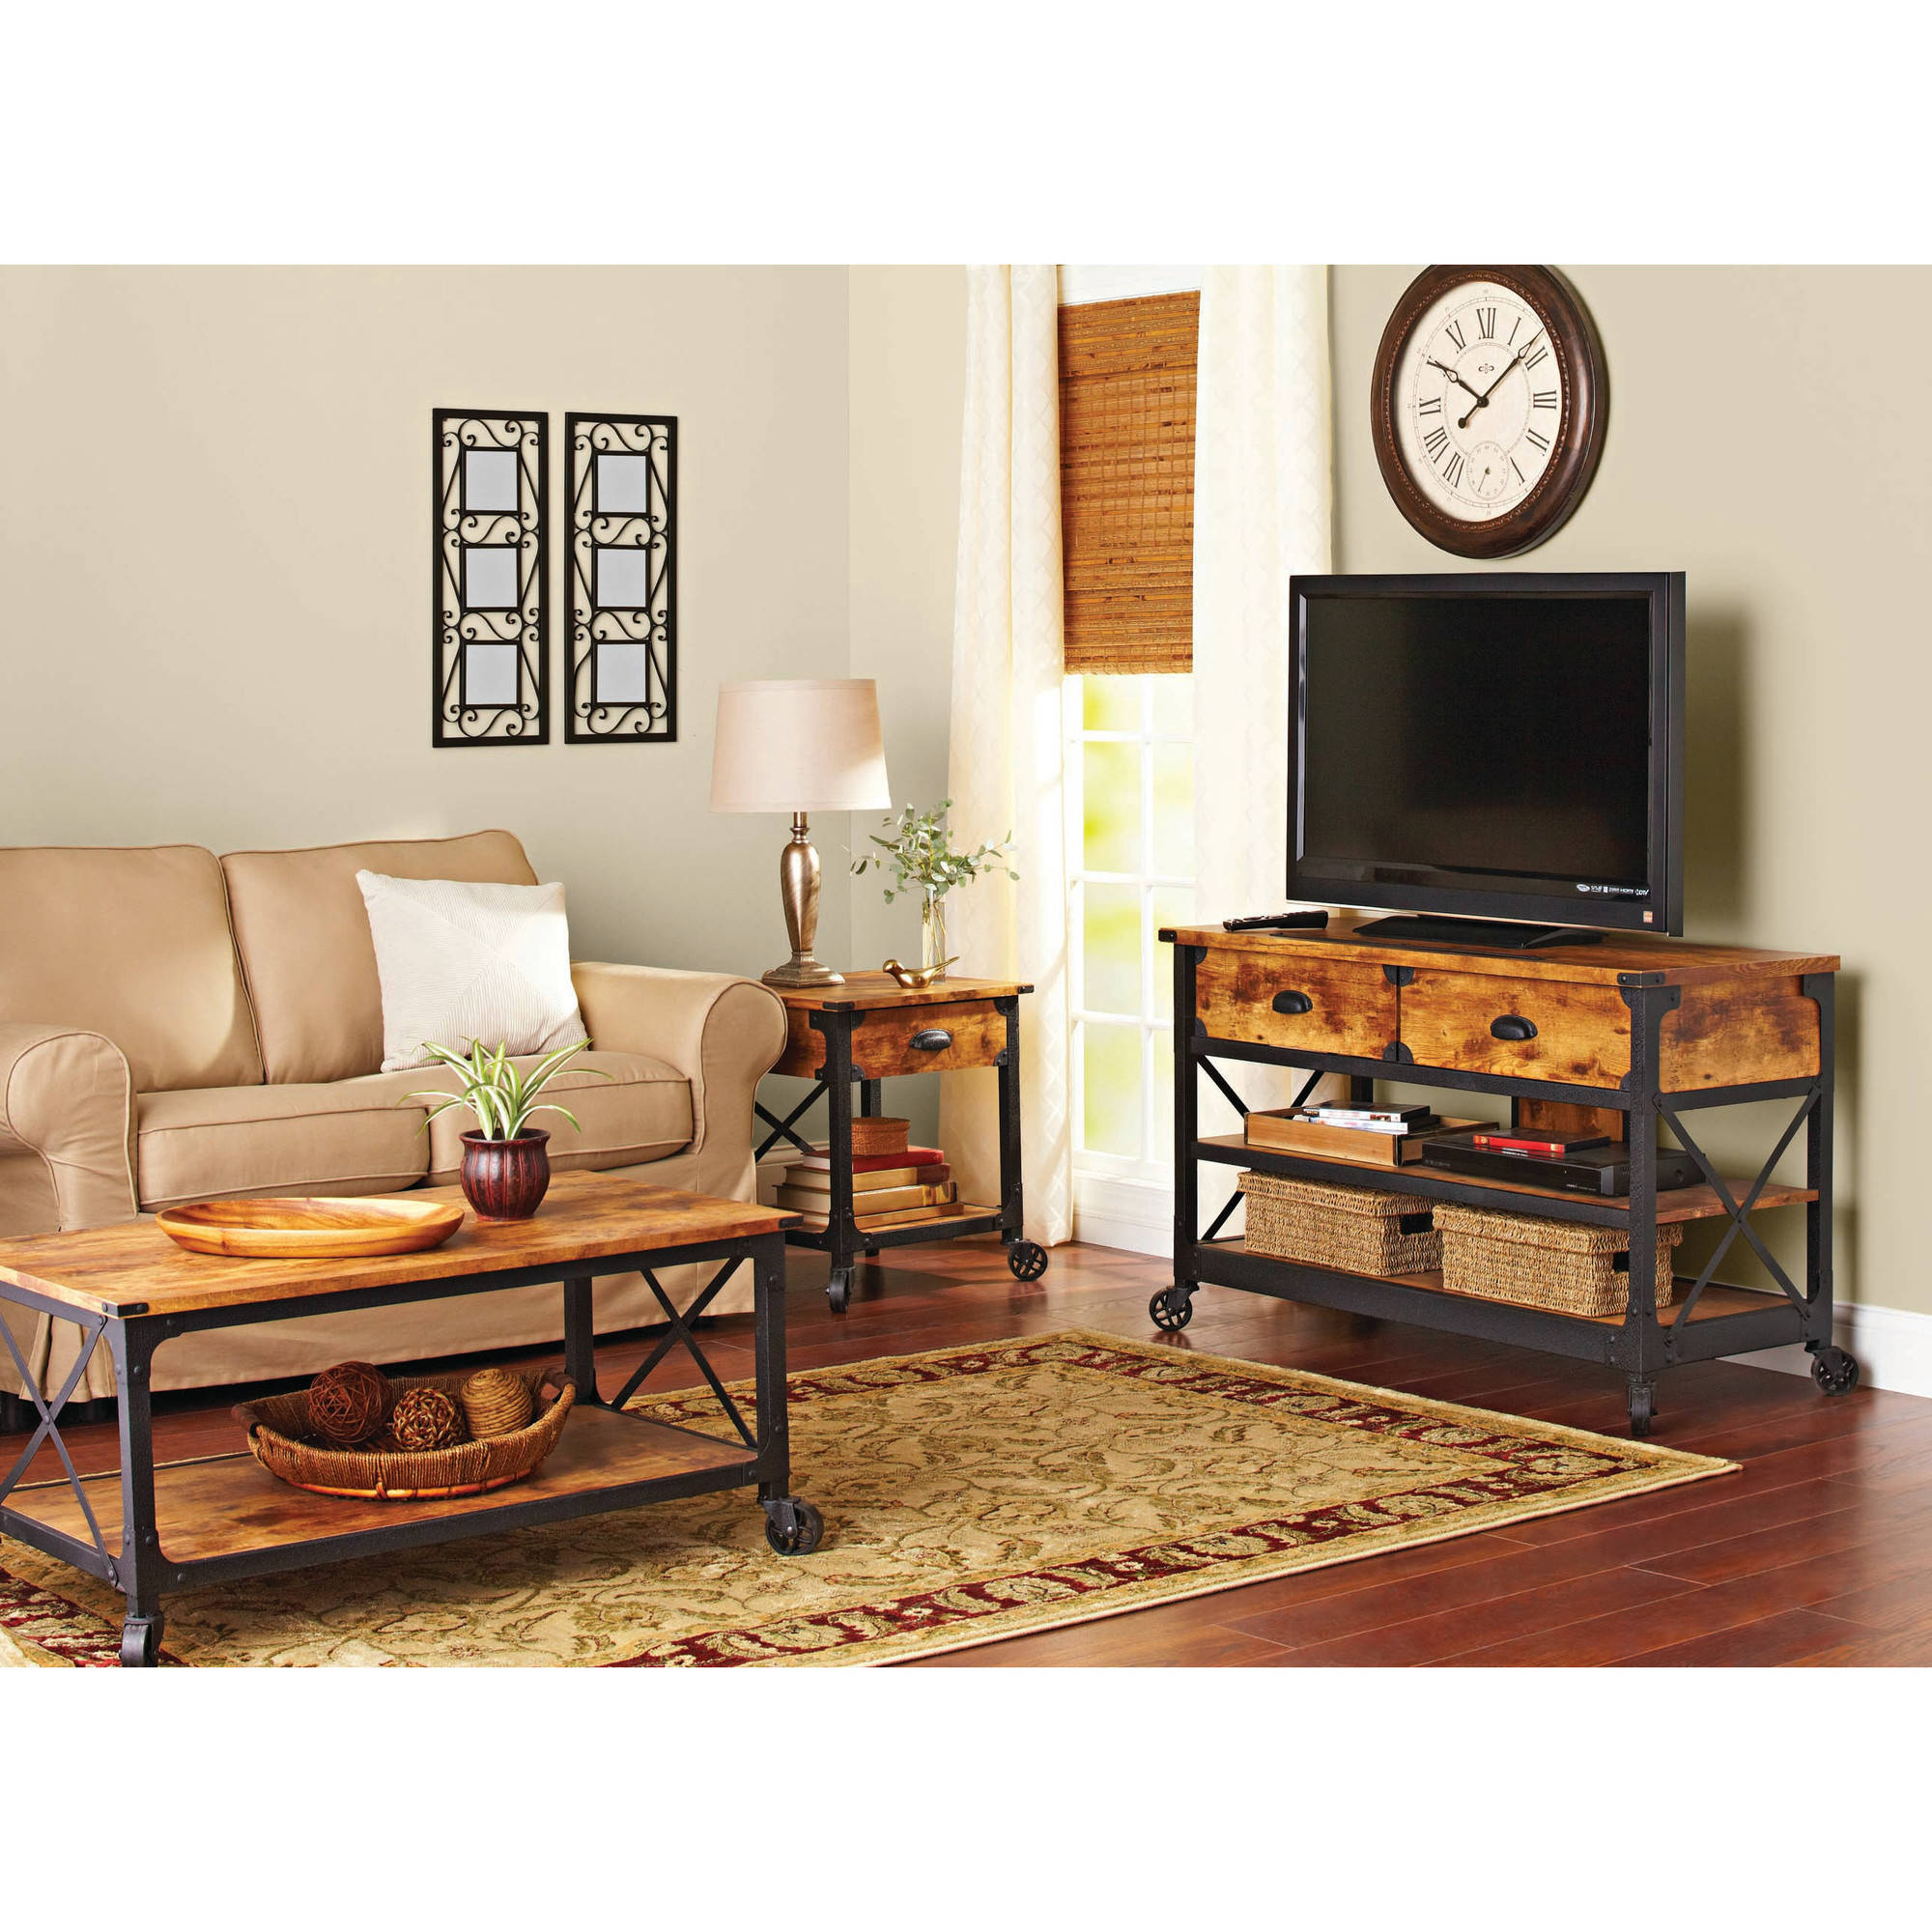 Better Homes And Gardens Rustic Country Living Room Set Walmart regarding Rustic Living Room Sets